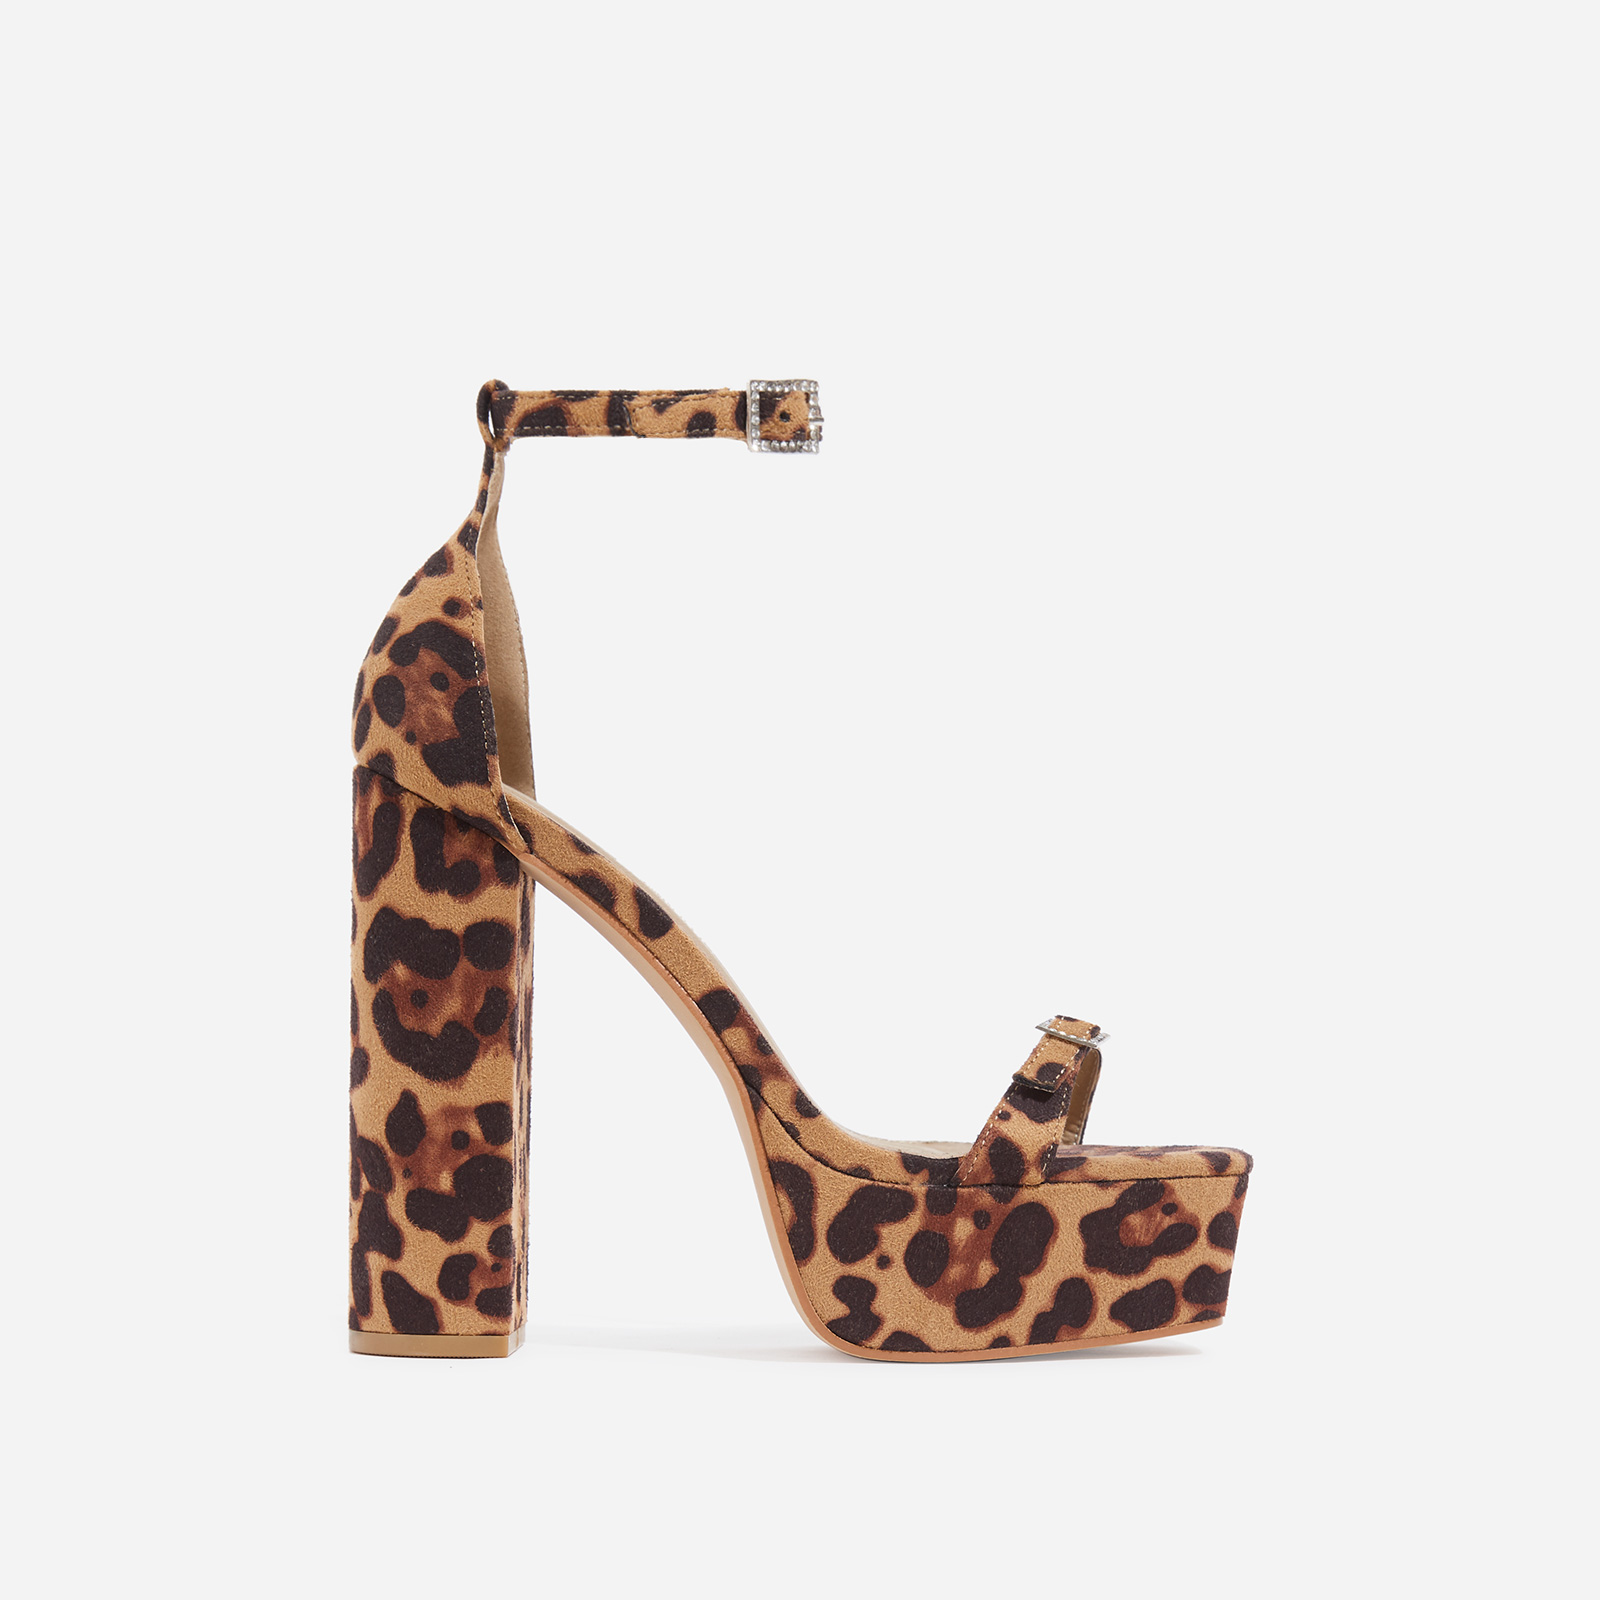 Milan Square Toe Barely There Platform Heel In Tan Leopard Print Faux Suede